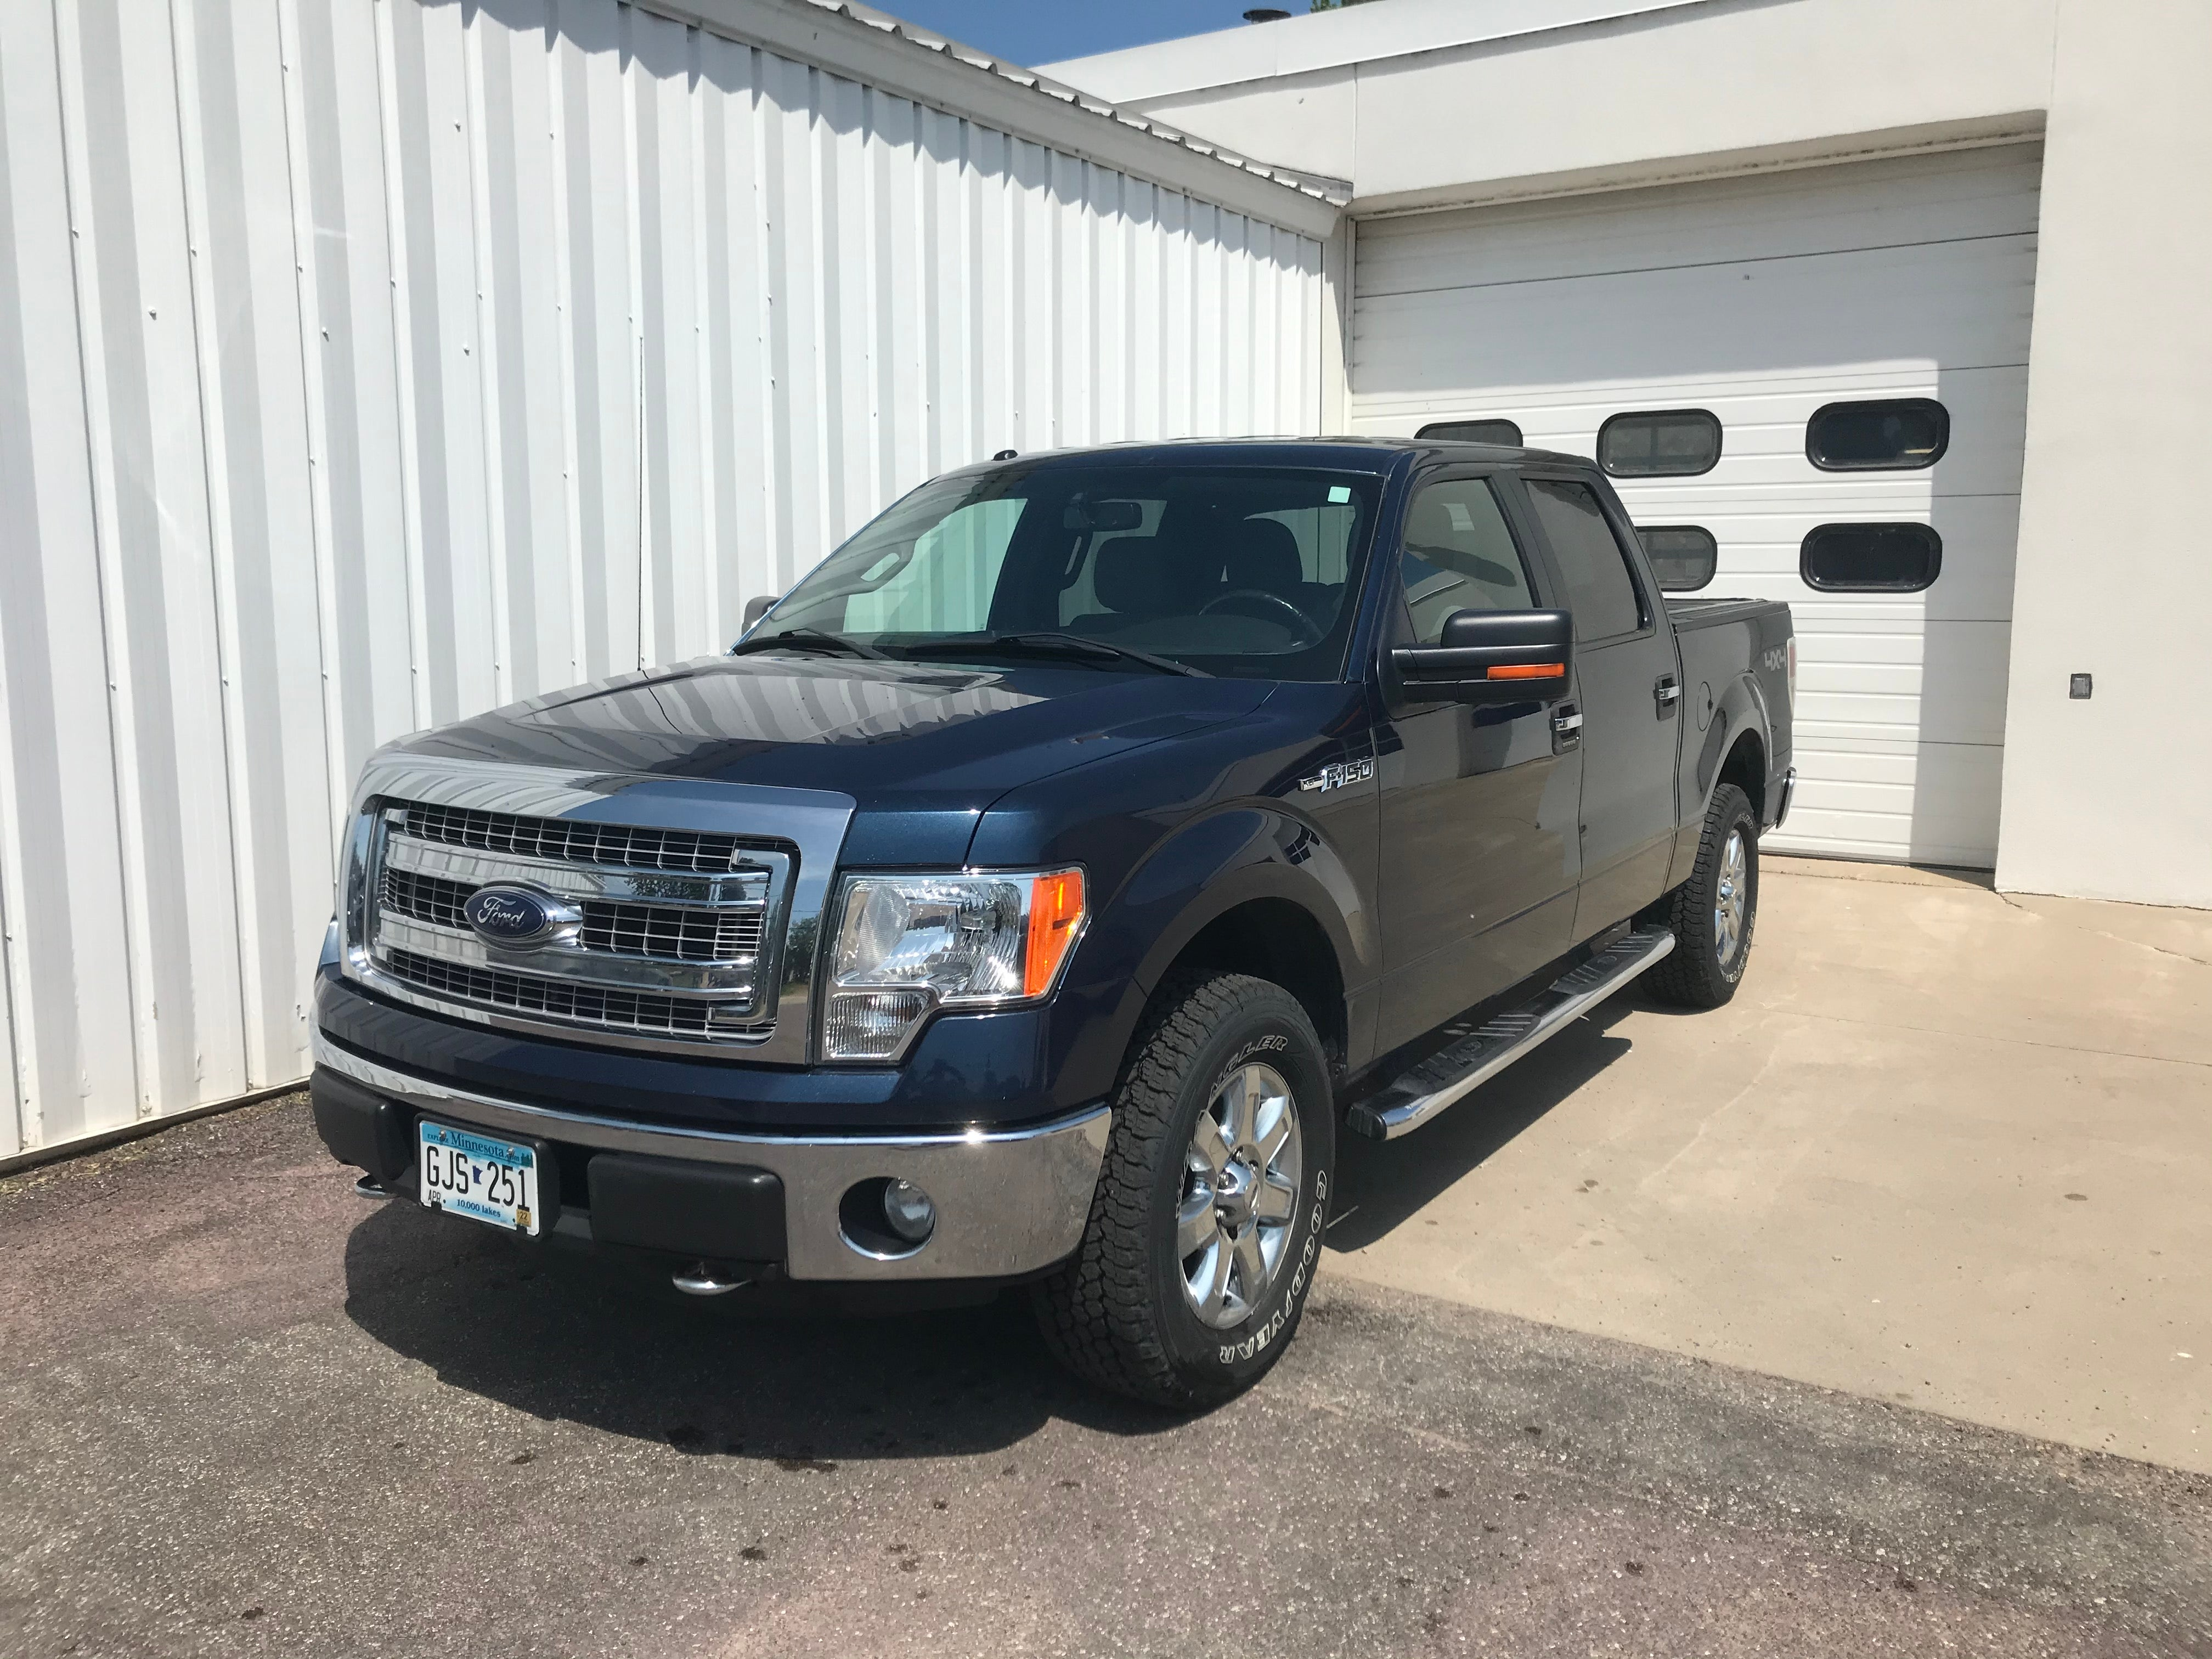 Used 2014 Ford F-150 FX4 with VIN 1FTFW1EF8EKD31951 for sale in Arlington, Minnesota